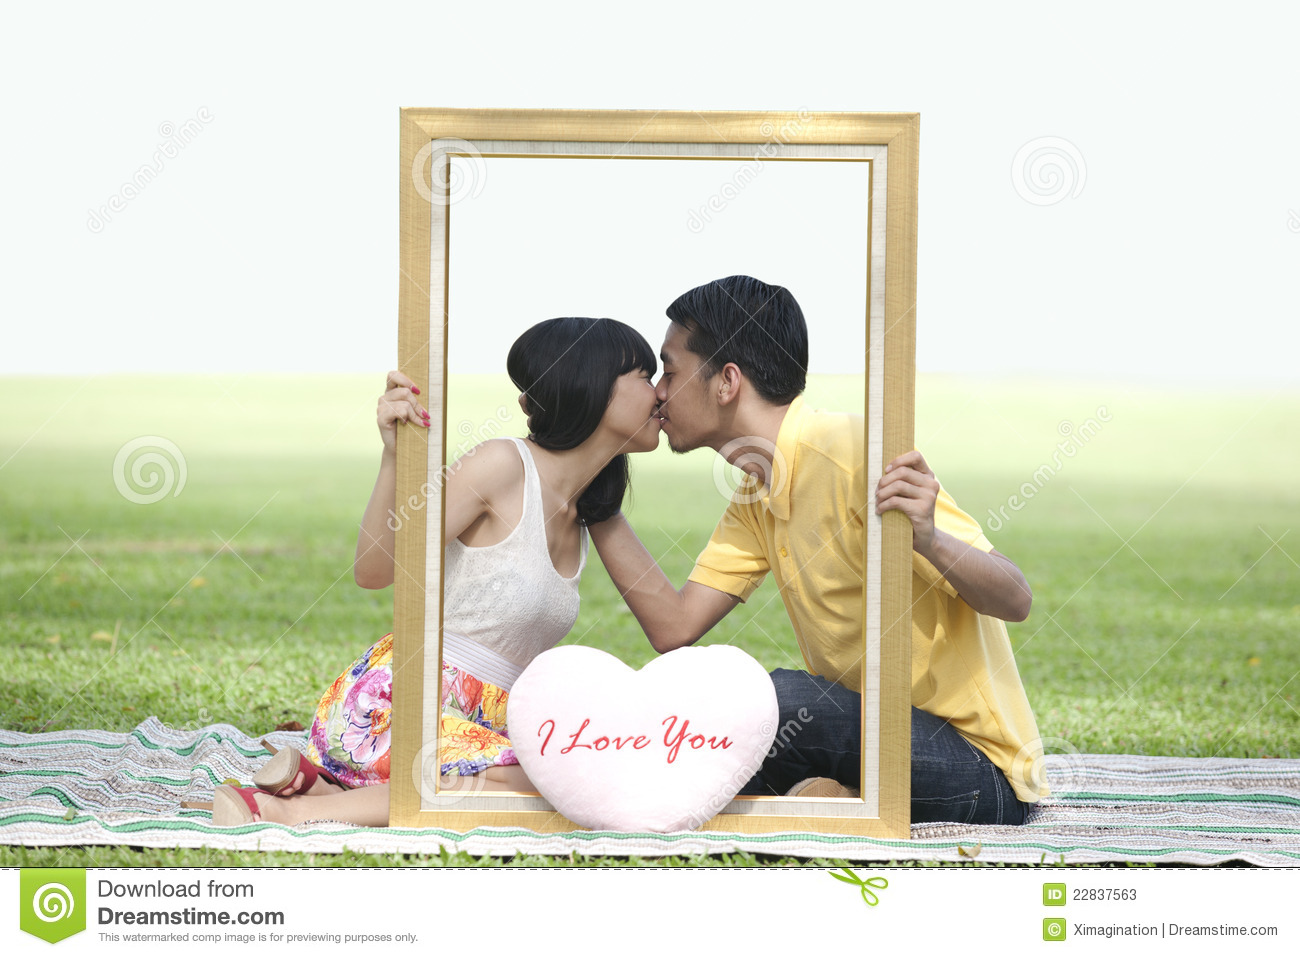 Kissing photos of lovers